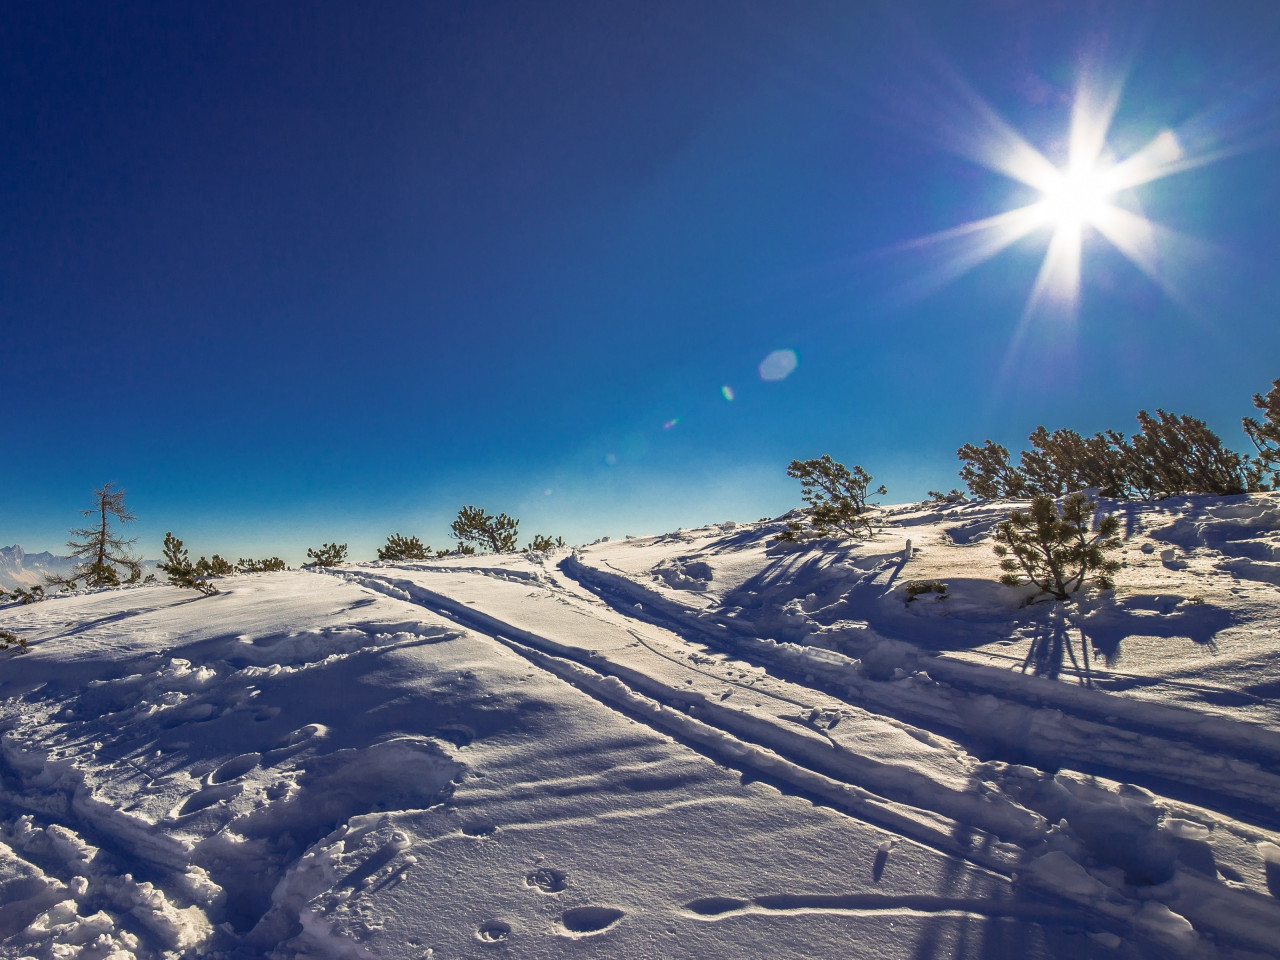 Sunny day in this Winter landscape wallpaper 1280x960